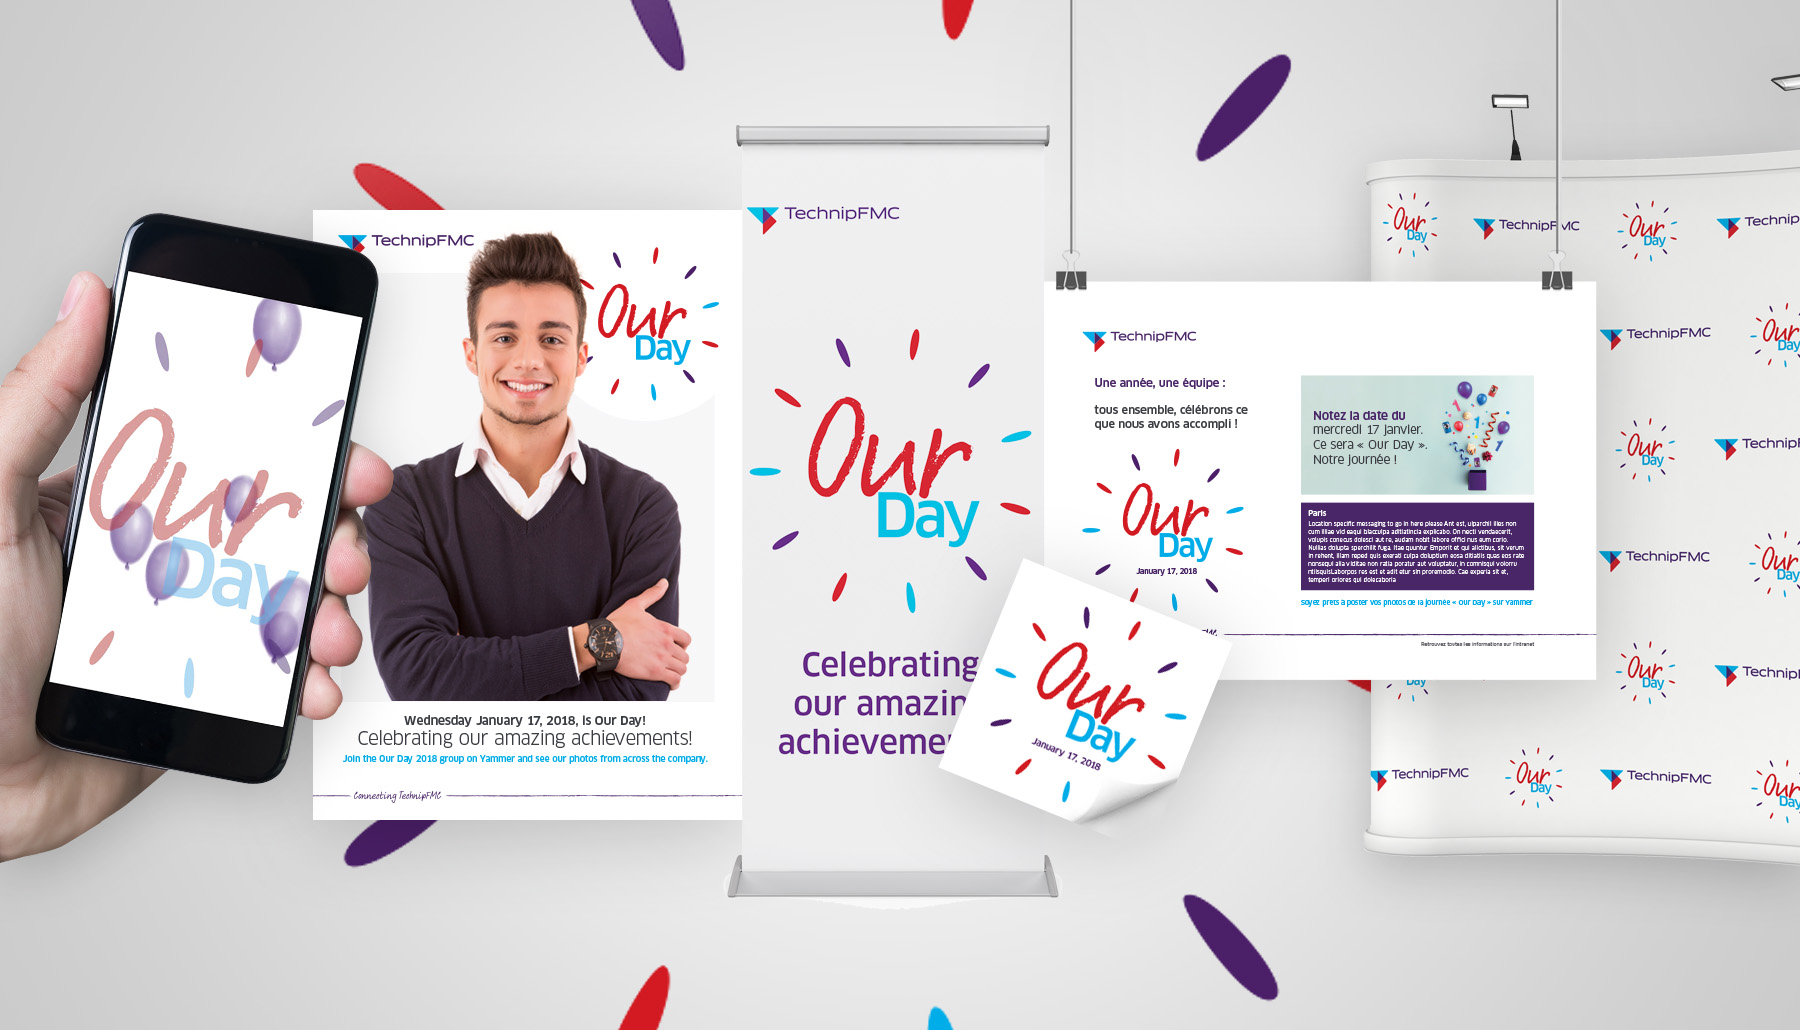 TechnipFMC Our Day collateral